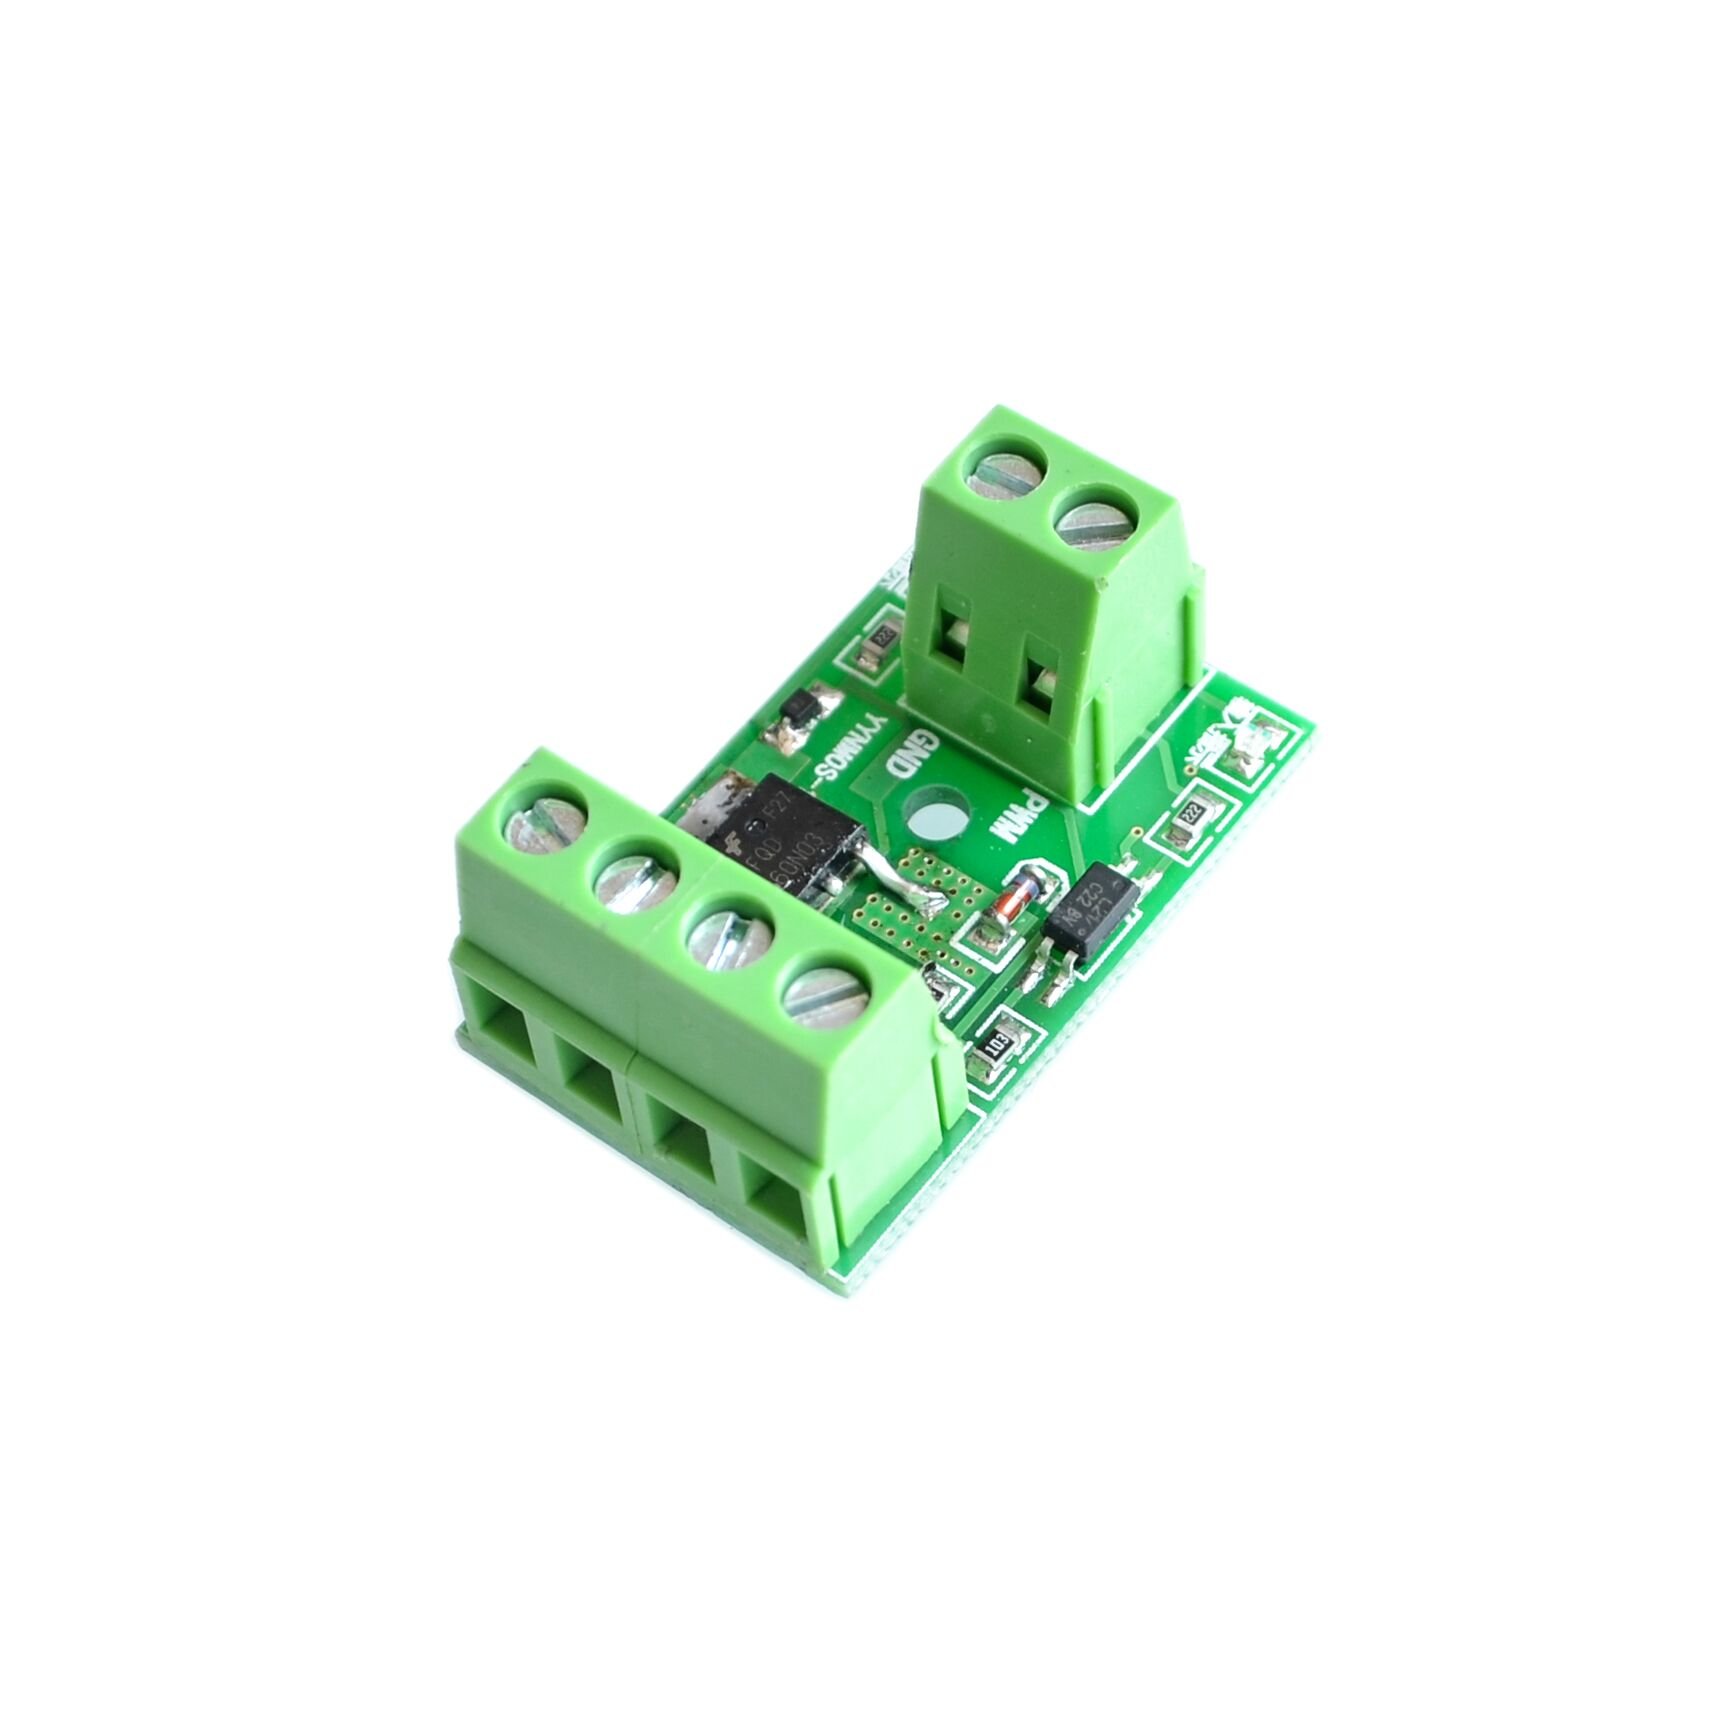 Electronic Components & Supplies Active Components Electronic Switch Control Board Pulse Trigger Switch Module Dc Control Mos Field Effect Transistor Optocoupler Elegant And Sturdy Package